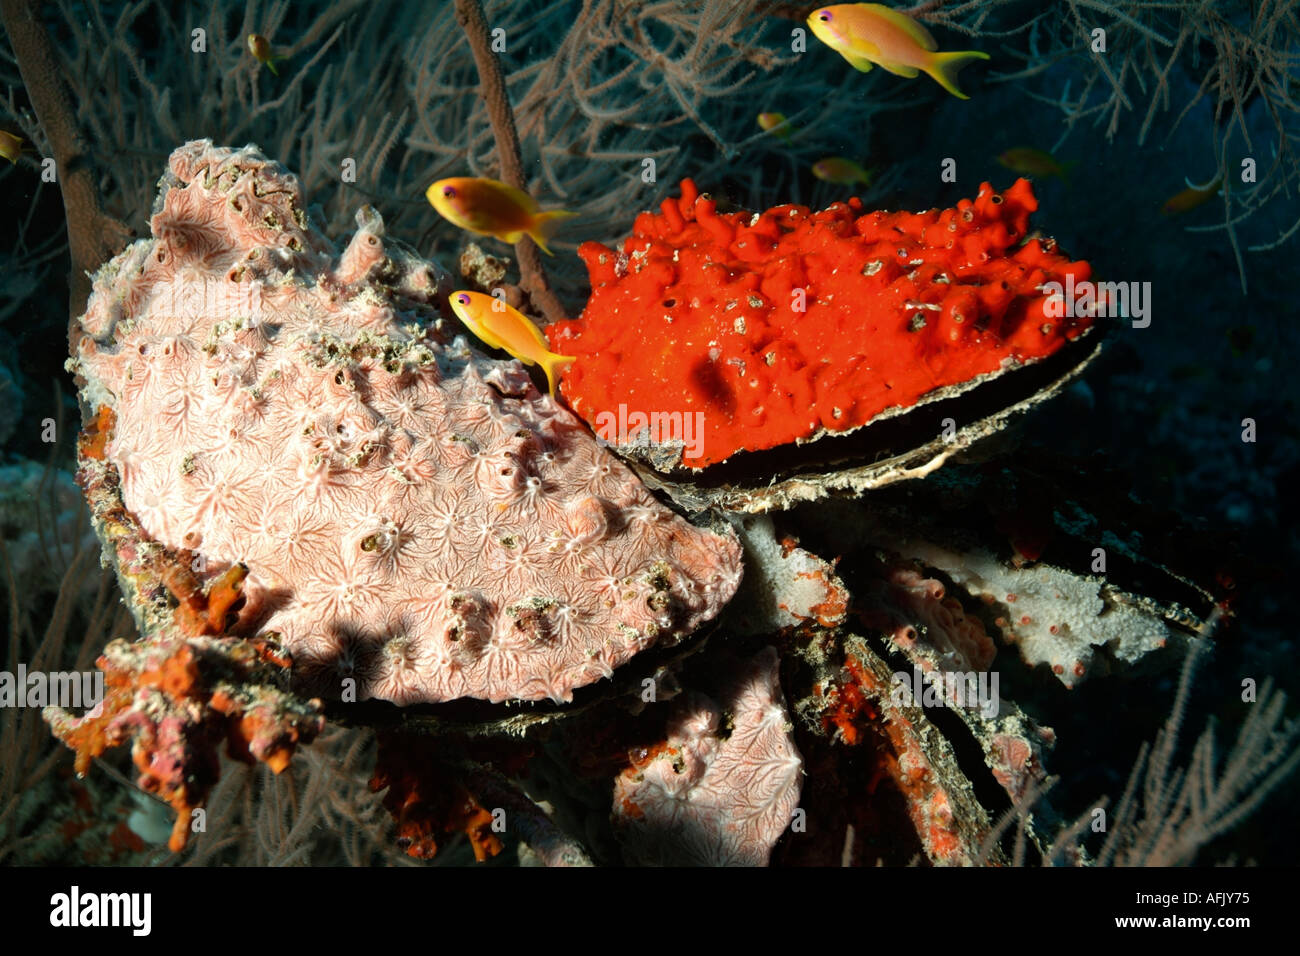 Two Winged Pearl Oysters - Pteria Penguin - On A Frondy Black Coral Antipathes Sp - Stock Image